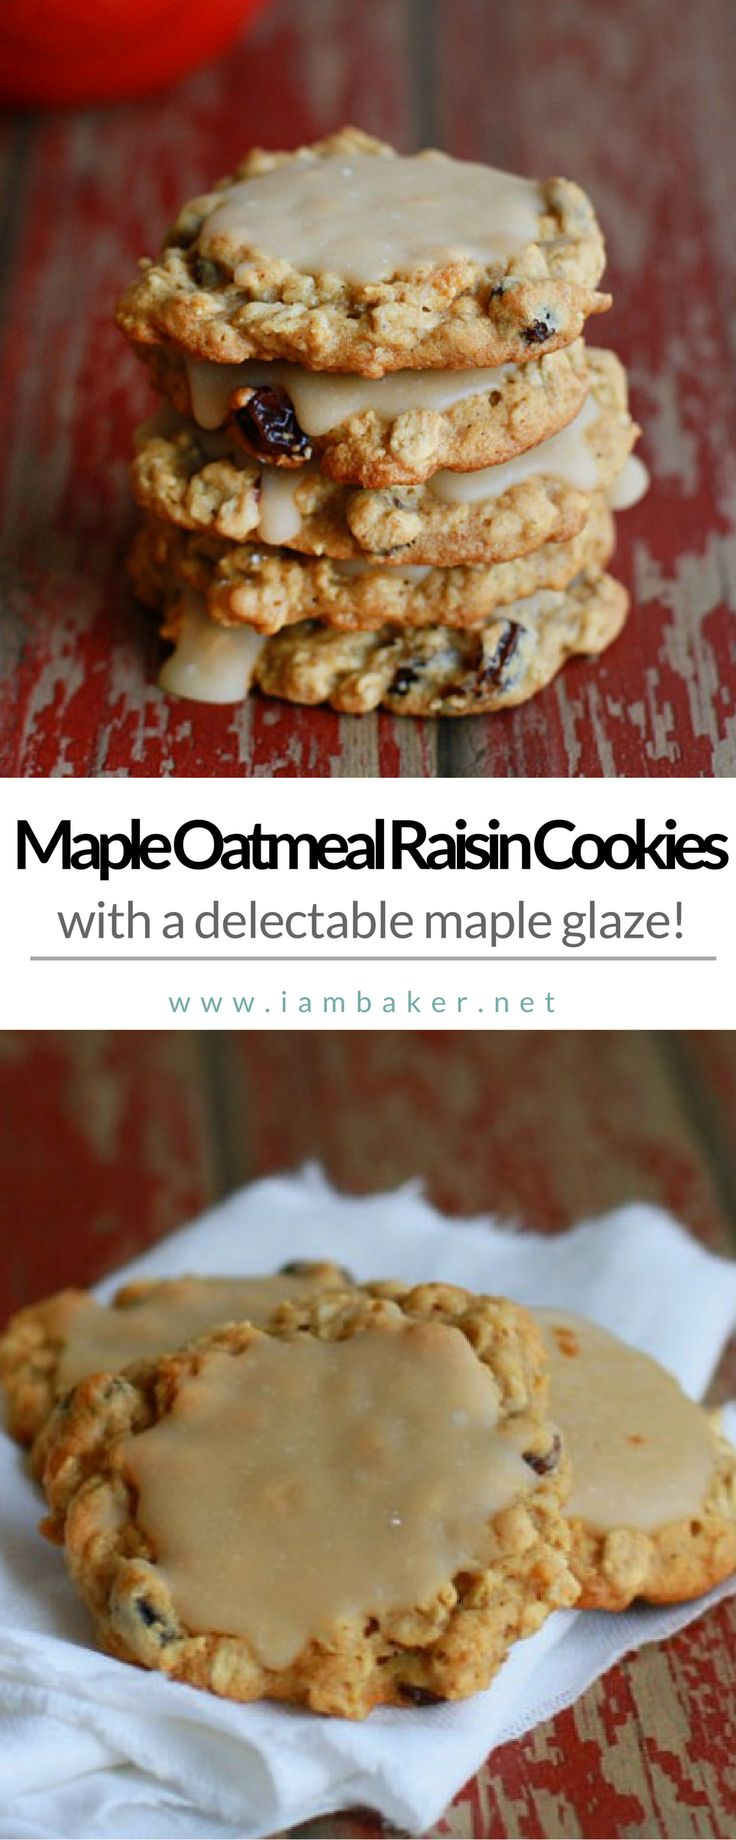 Craving for easy cookies recipes? You gotta try this Maple Oatmeal Raisin Cookies!  It is a jazzed up oatmeal cookie with a delectable maple glaze. That maple glaze is so rich, so complimentary to that subtle sweet spicy cookie, its like a match made in cookie heaven. For more delicious dessert recipes to make, check us out at #iambaker.  #desserts #sweettooth  Easy Dessert Recipes | Easy Thanksgiving Desserts Recipes